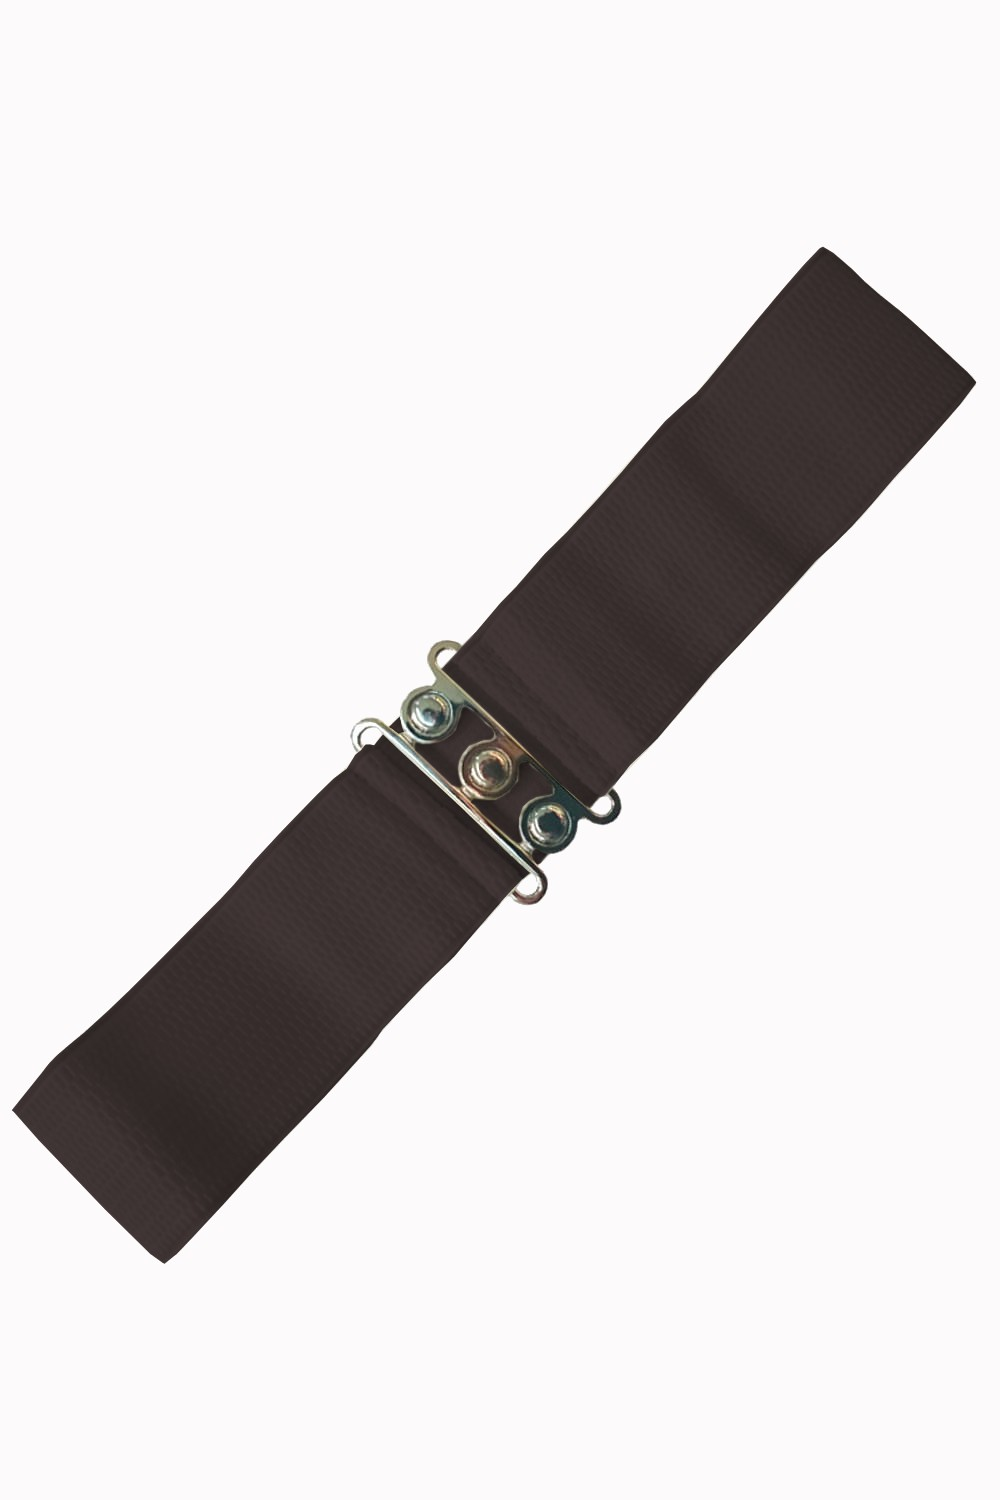 Banned Apparel Dark Chocolate Retro Belt